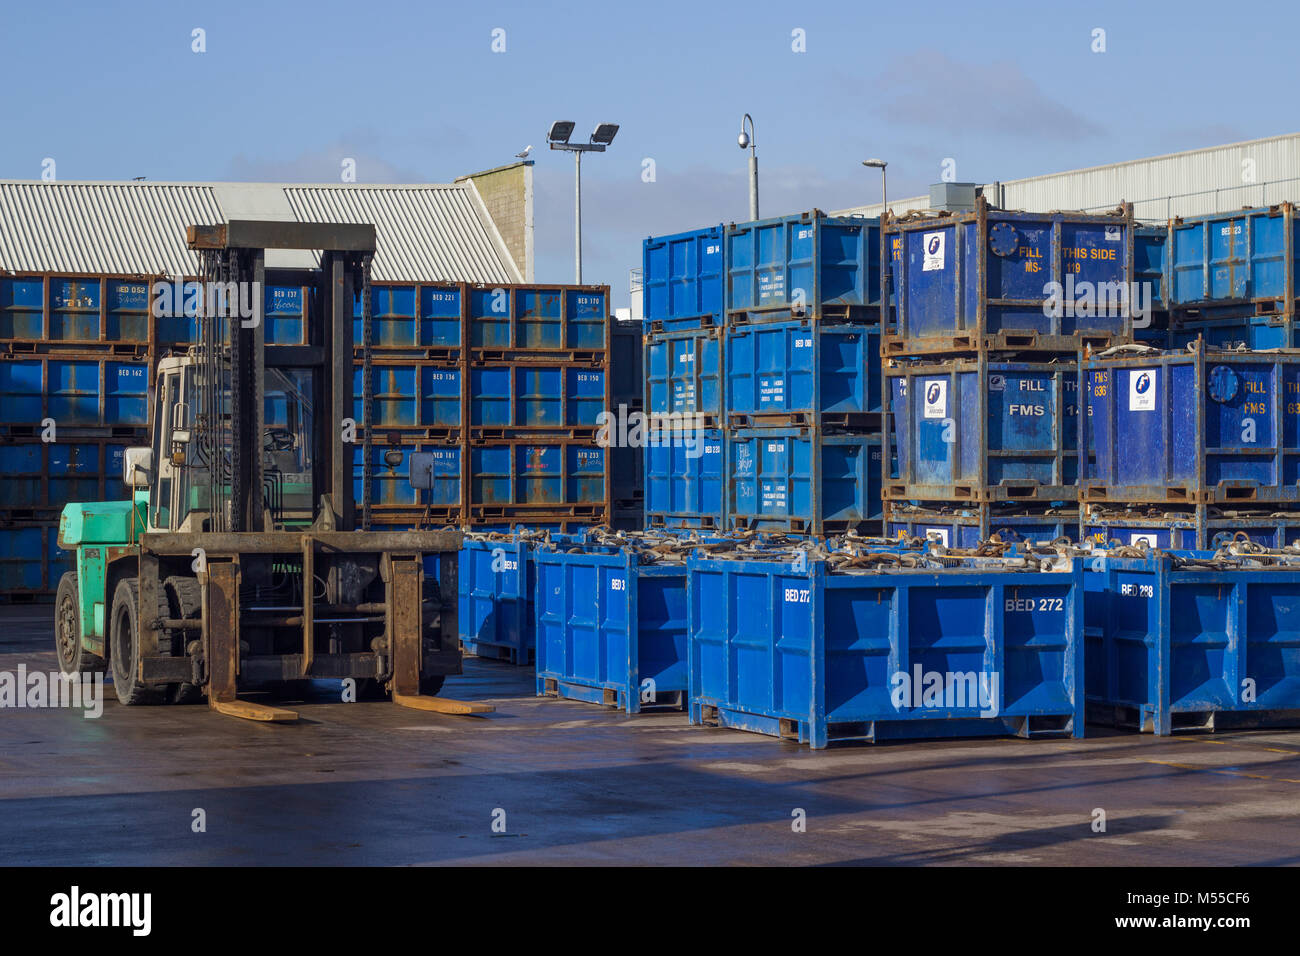 Square containers and forklift in Aberdeen industrial port - Stock Image & Aberdeen Oil Gas Storage Stock Photos u0026 Aberdeen Oil Gas Storage ...